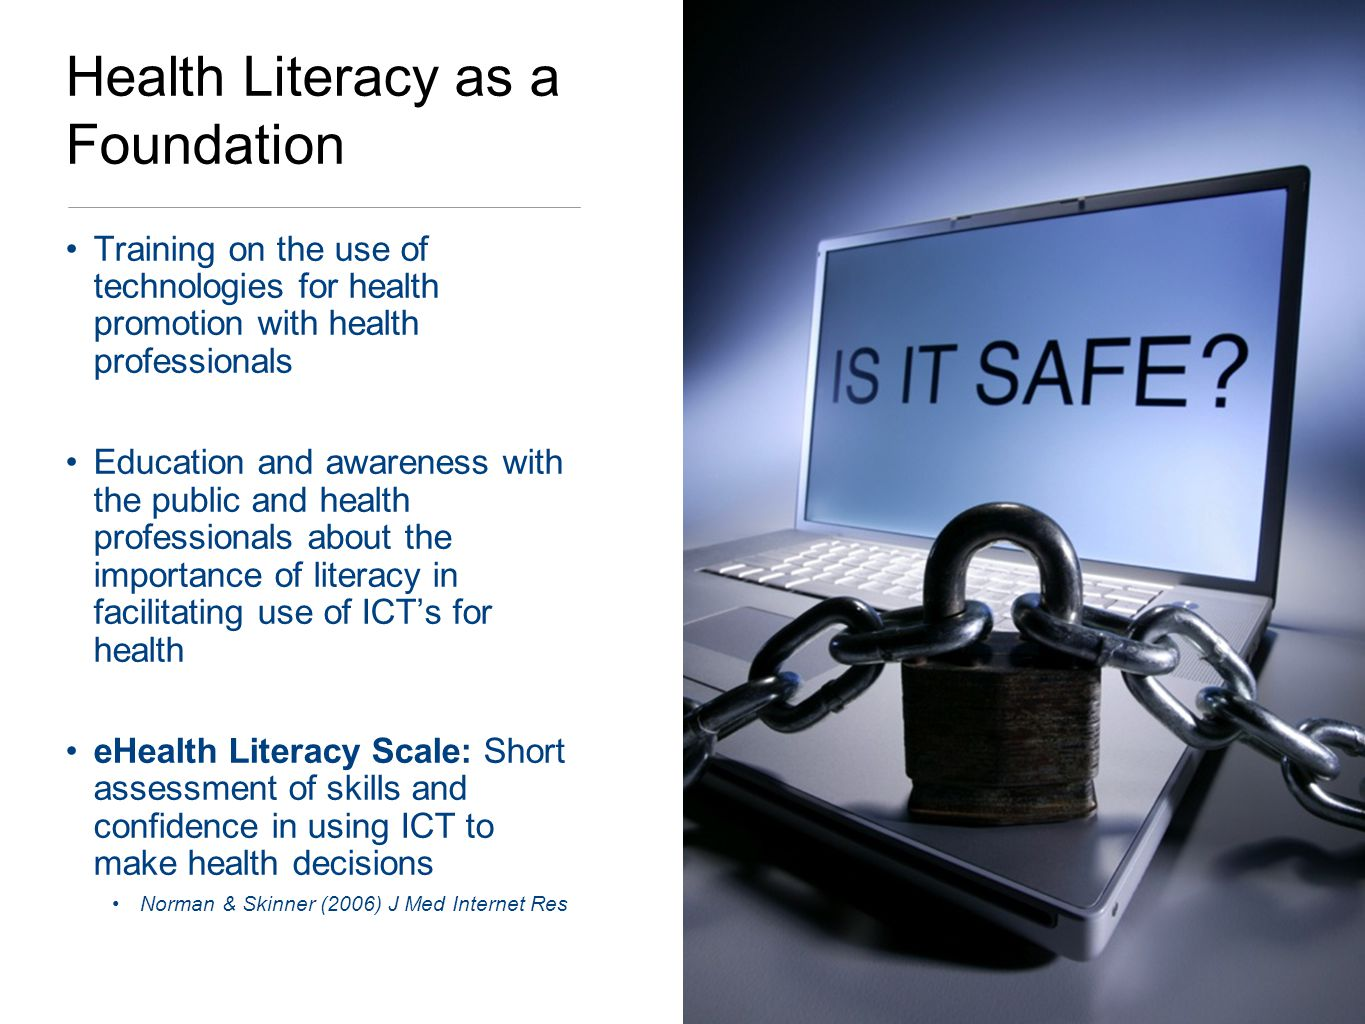 Health Literacy as a Foundation Training on the use of technologies for health promotion with health professionals Education and awareness with the public and health professionals about the importance of literacy in facilitating use of ICTs for health eHealth Literacy Scale: Short assessment of skills and confidence in using ICT to make health decisions Norman & Skinner (2006) J Med Internet Res